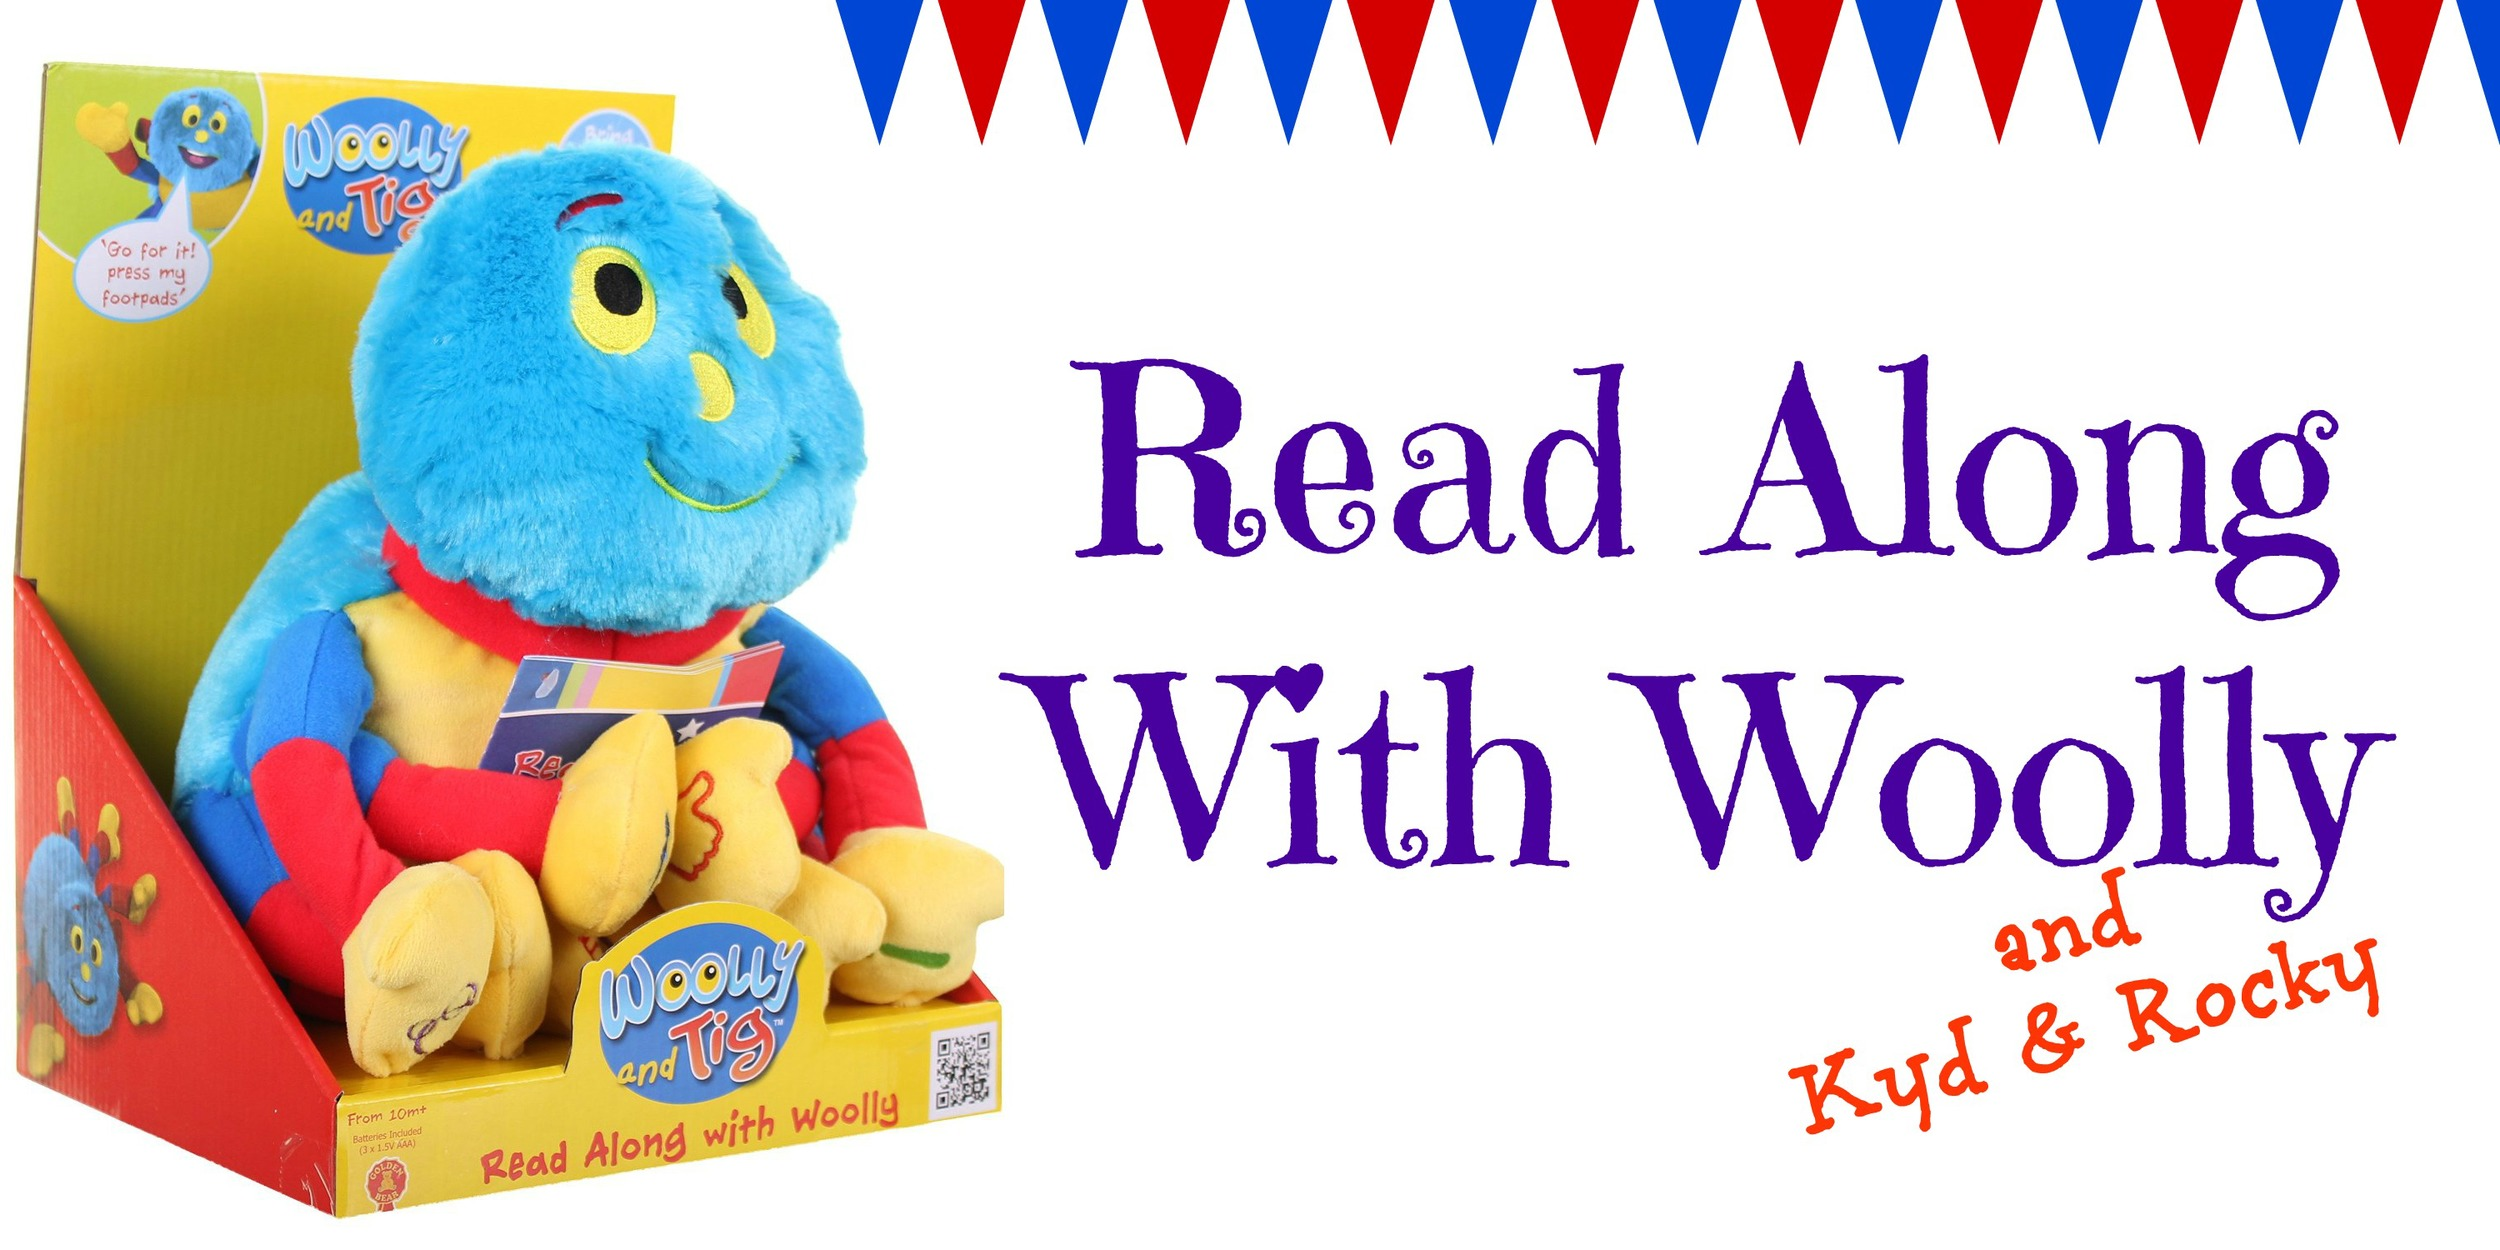 Read Along with Woolly.jpg